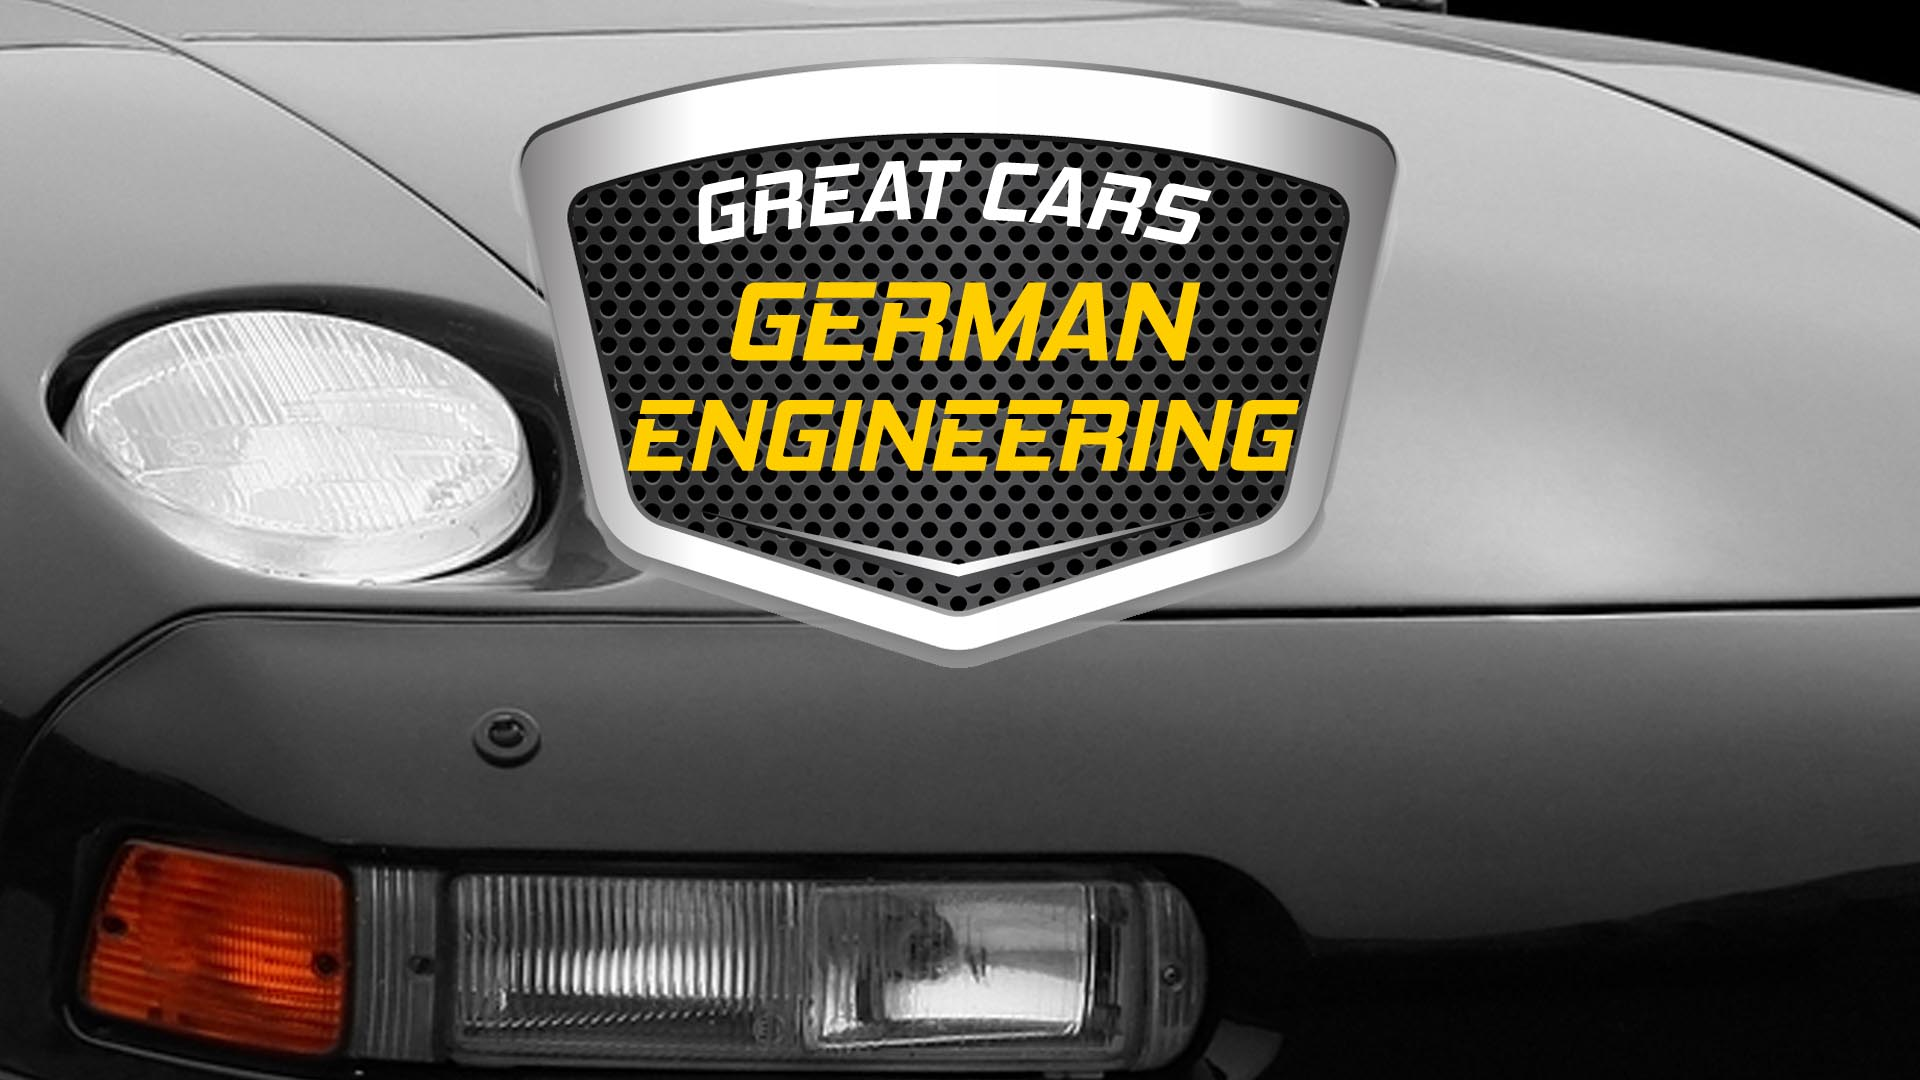 Great Cars: German Engineering